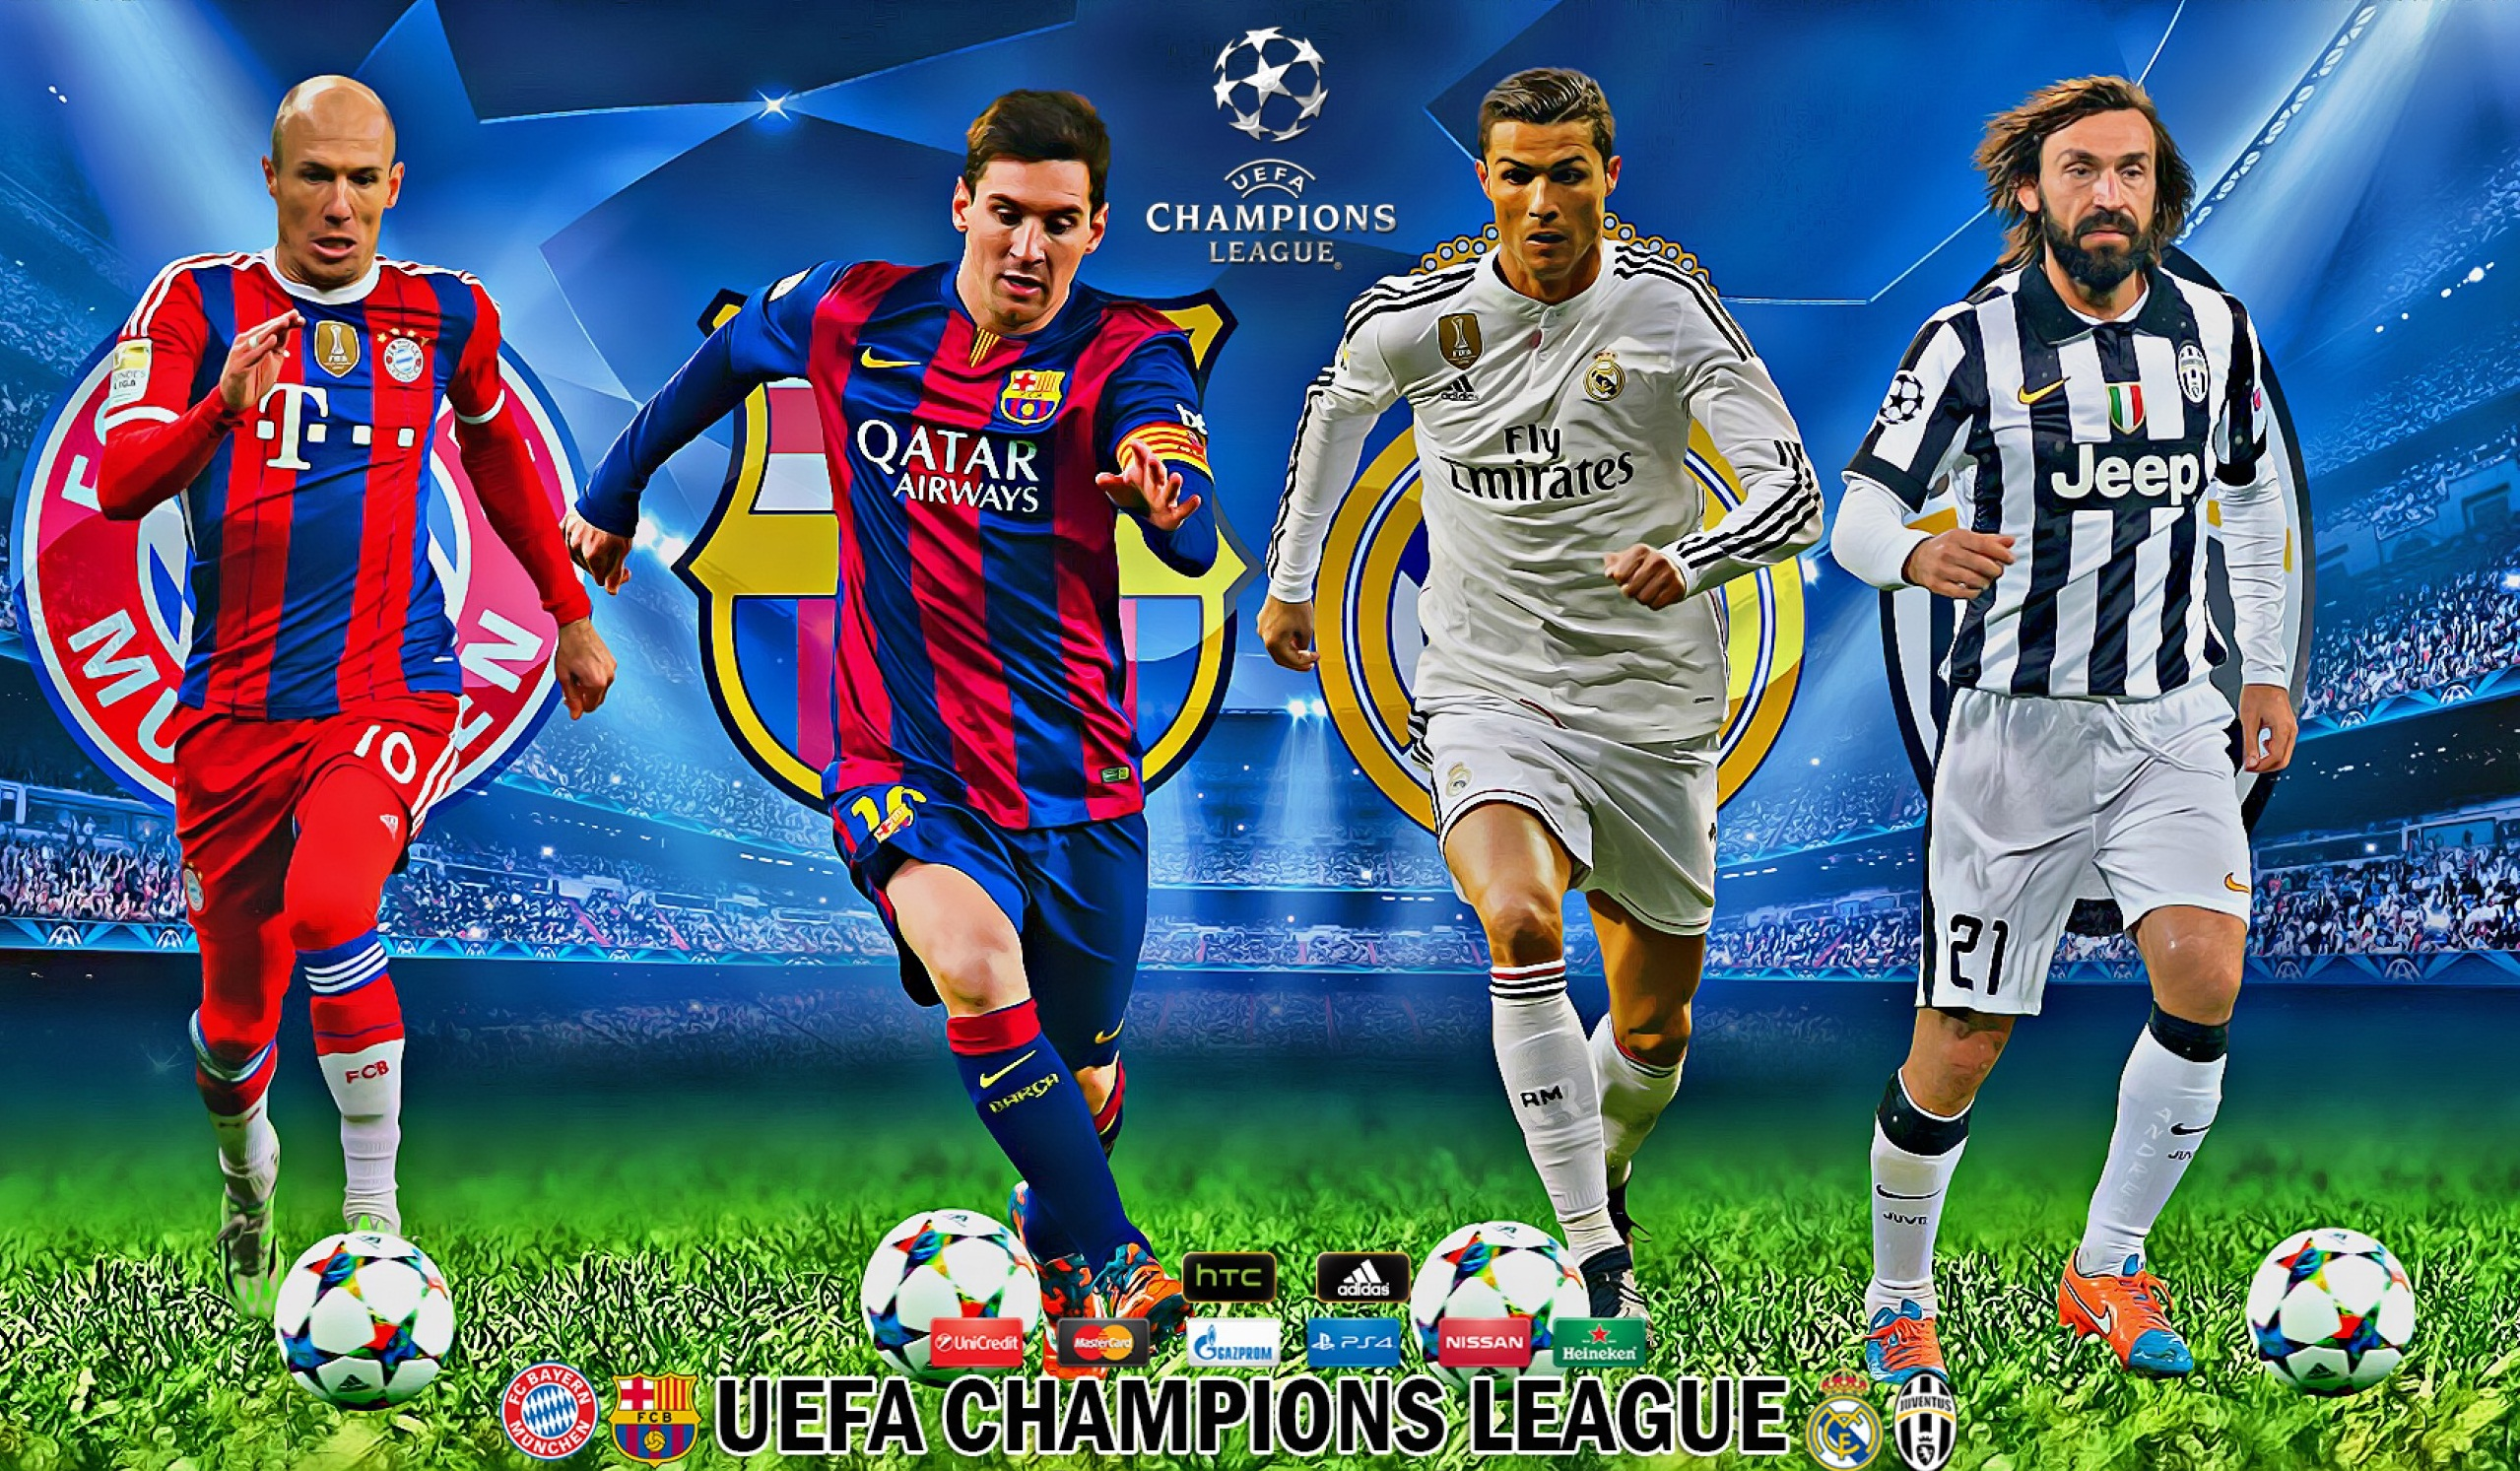 Real Madrid D Uefa Champions League Wallpapers